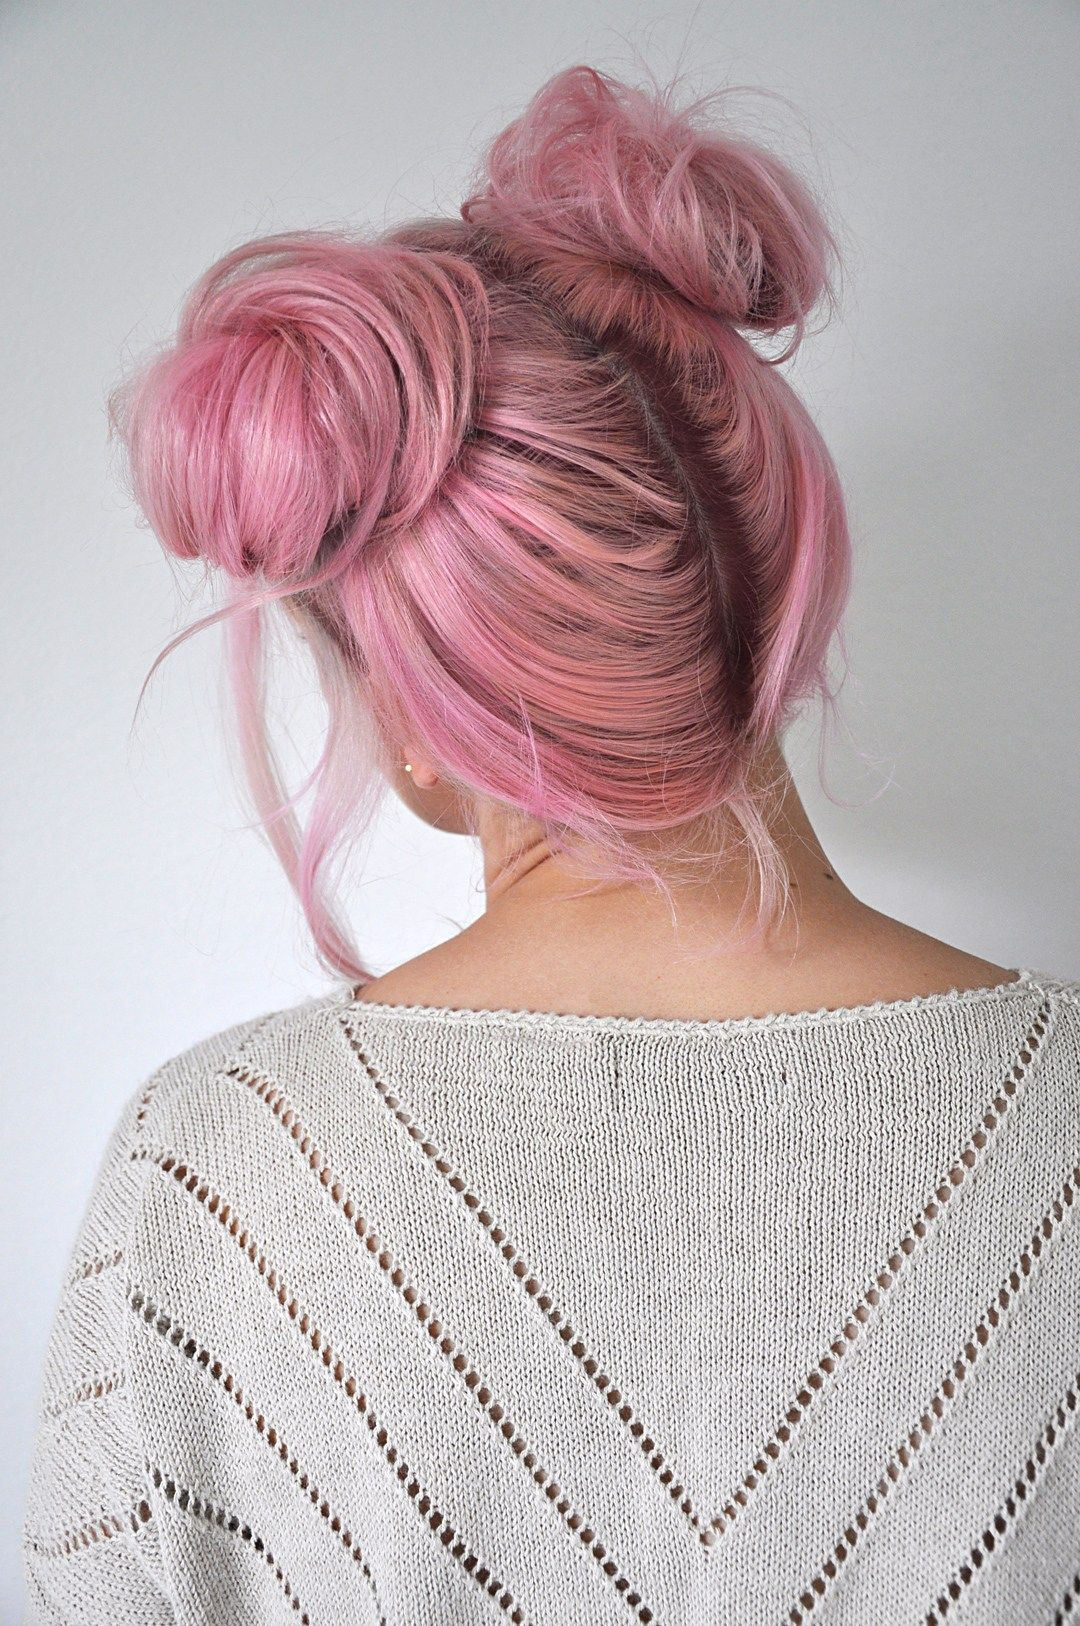 Quick and easy space buns hairstyle tutorial bun hairstyle